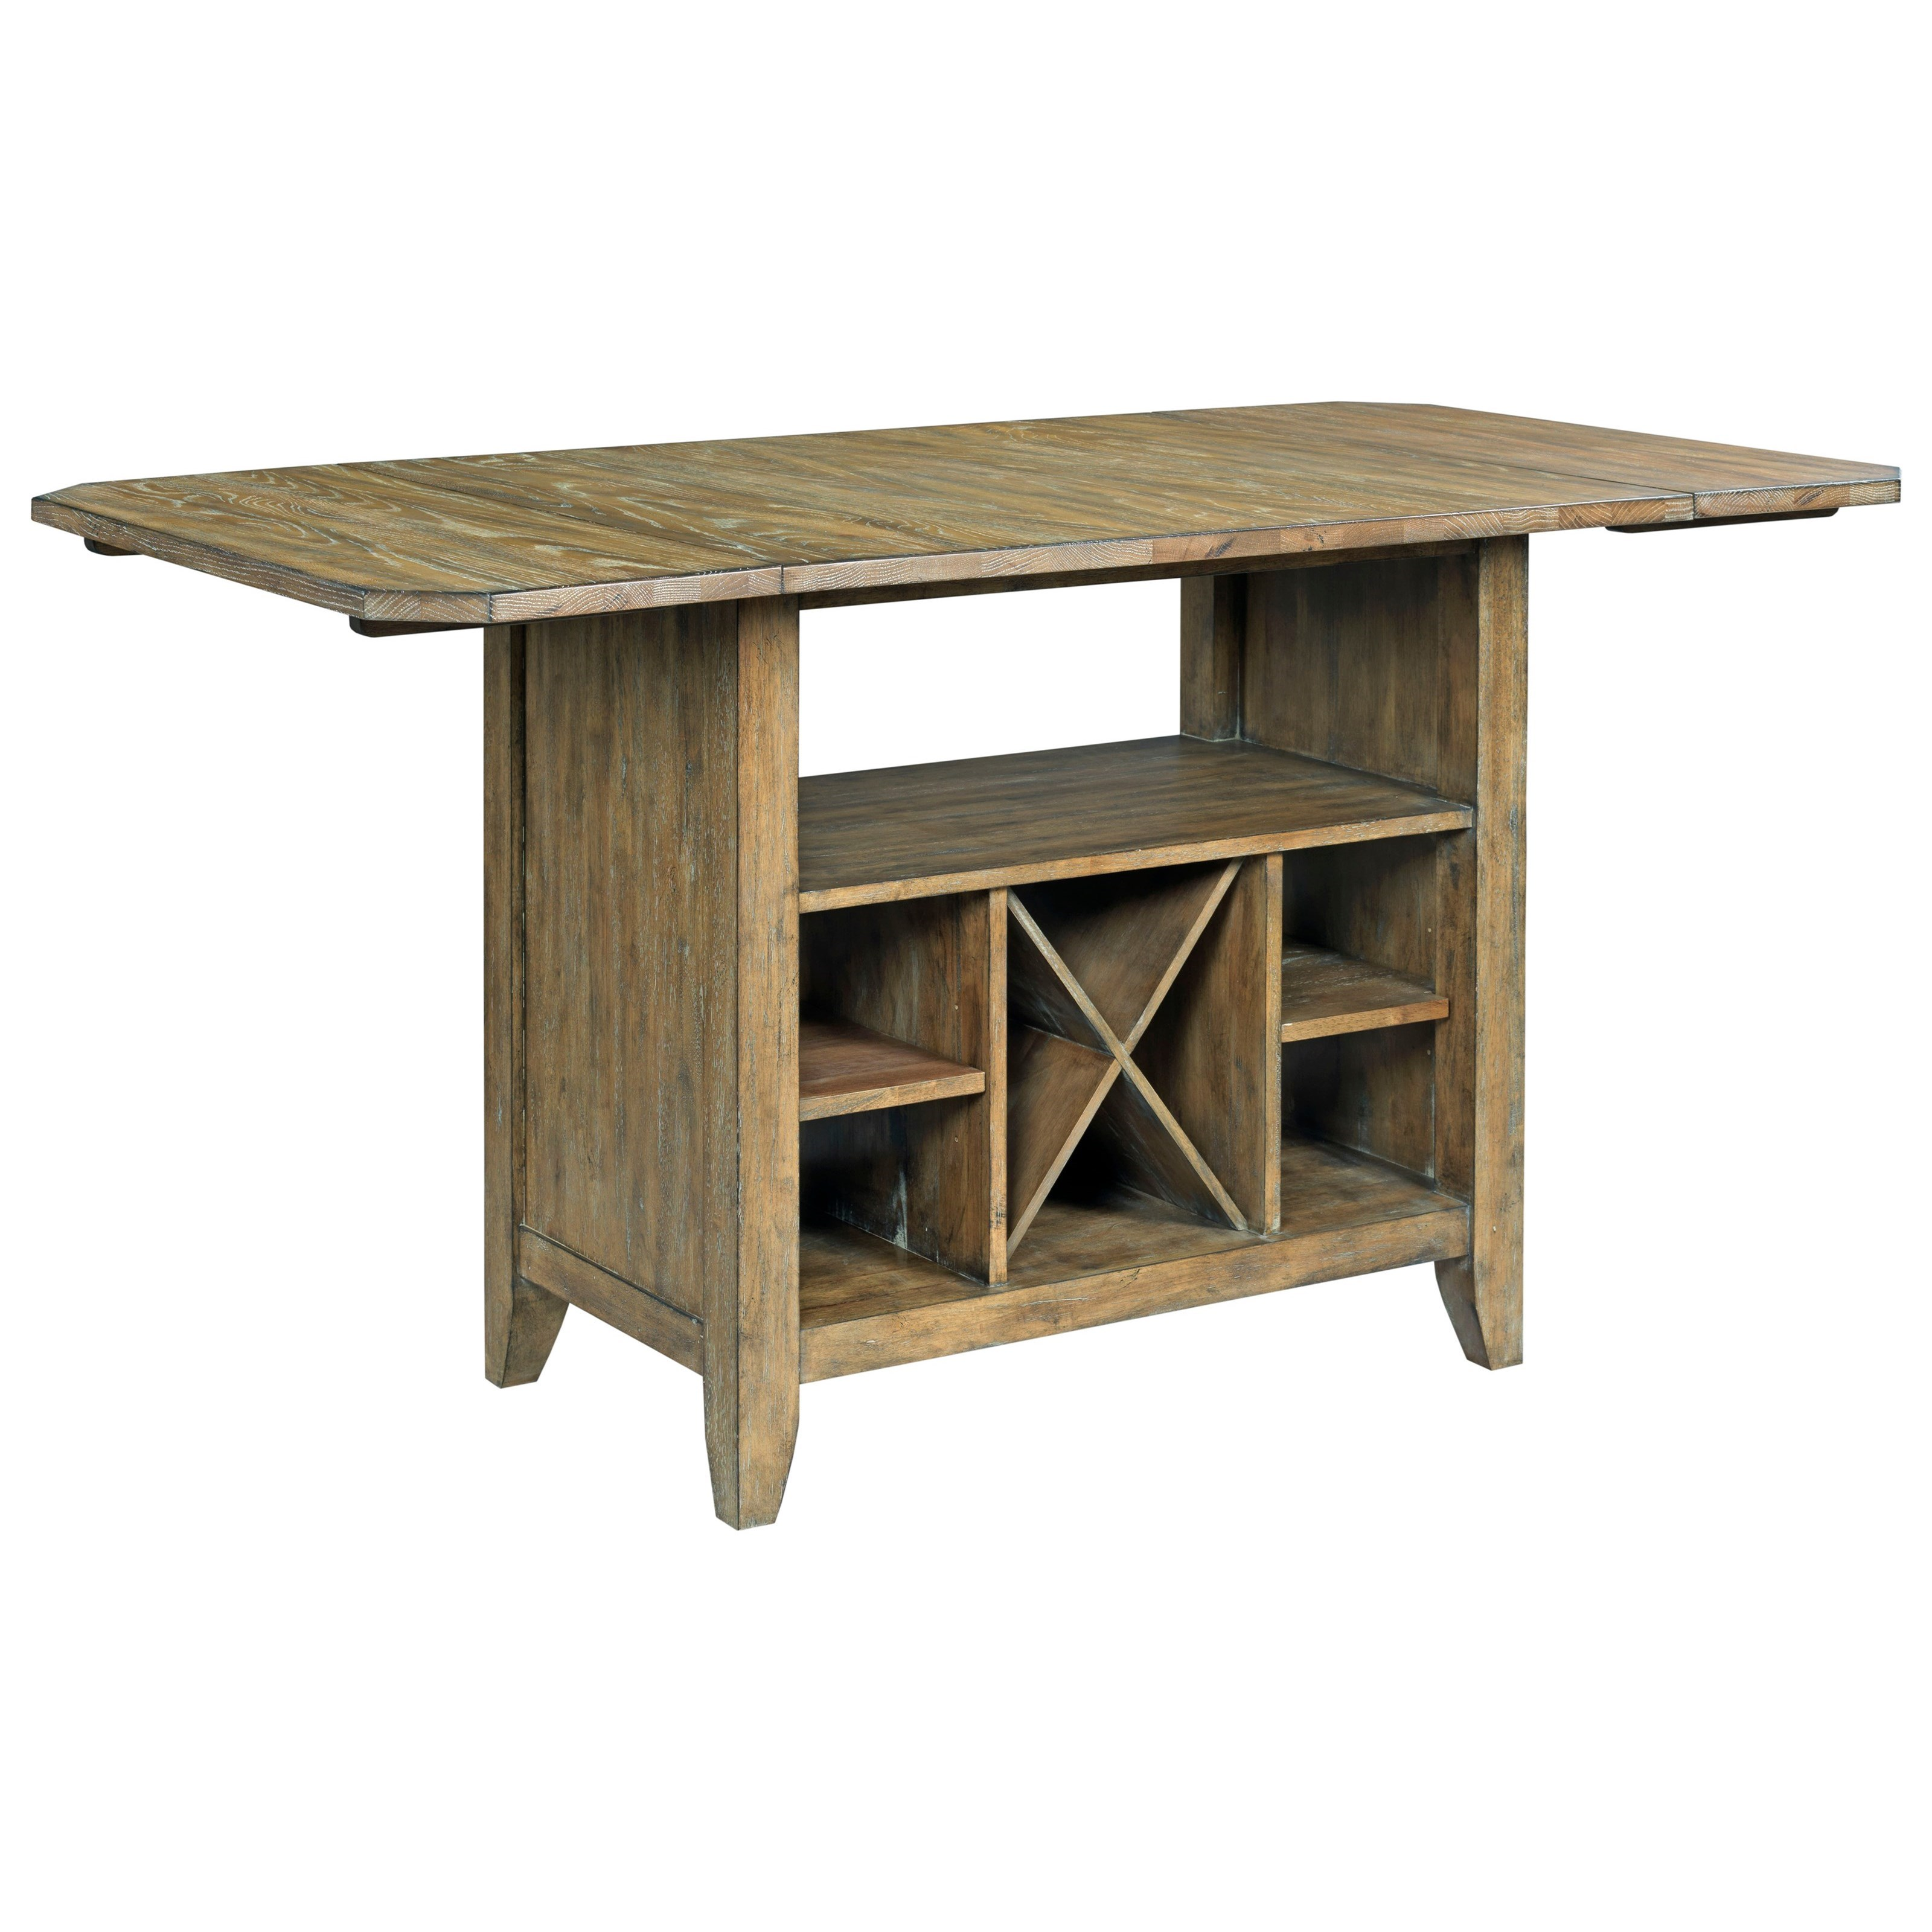 The Nook Solid Wood Kitchen Island With Protected Top And